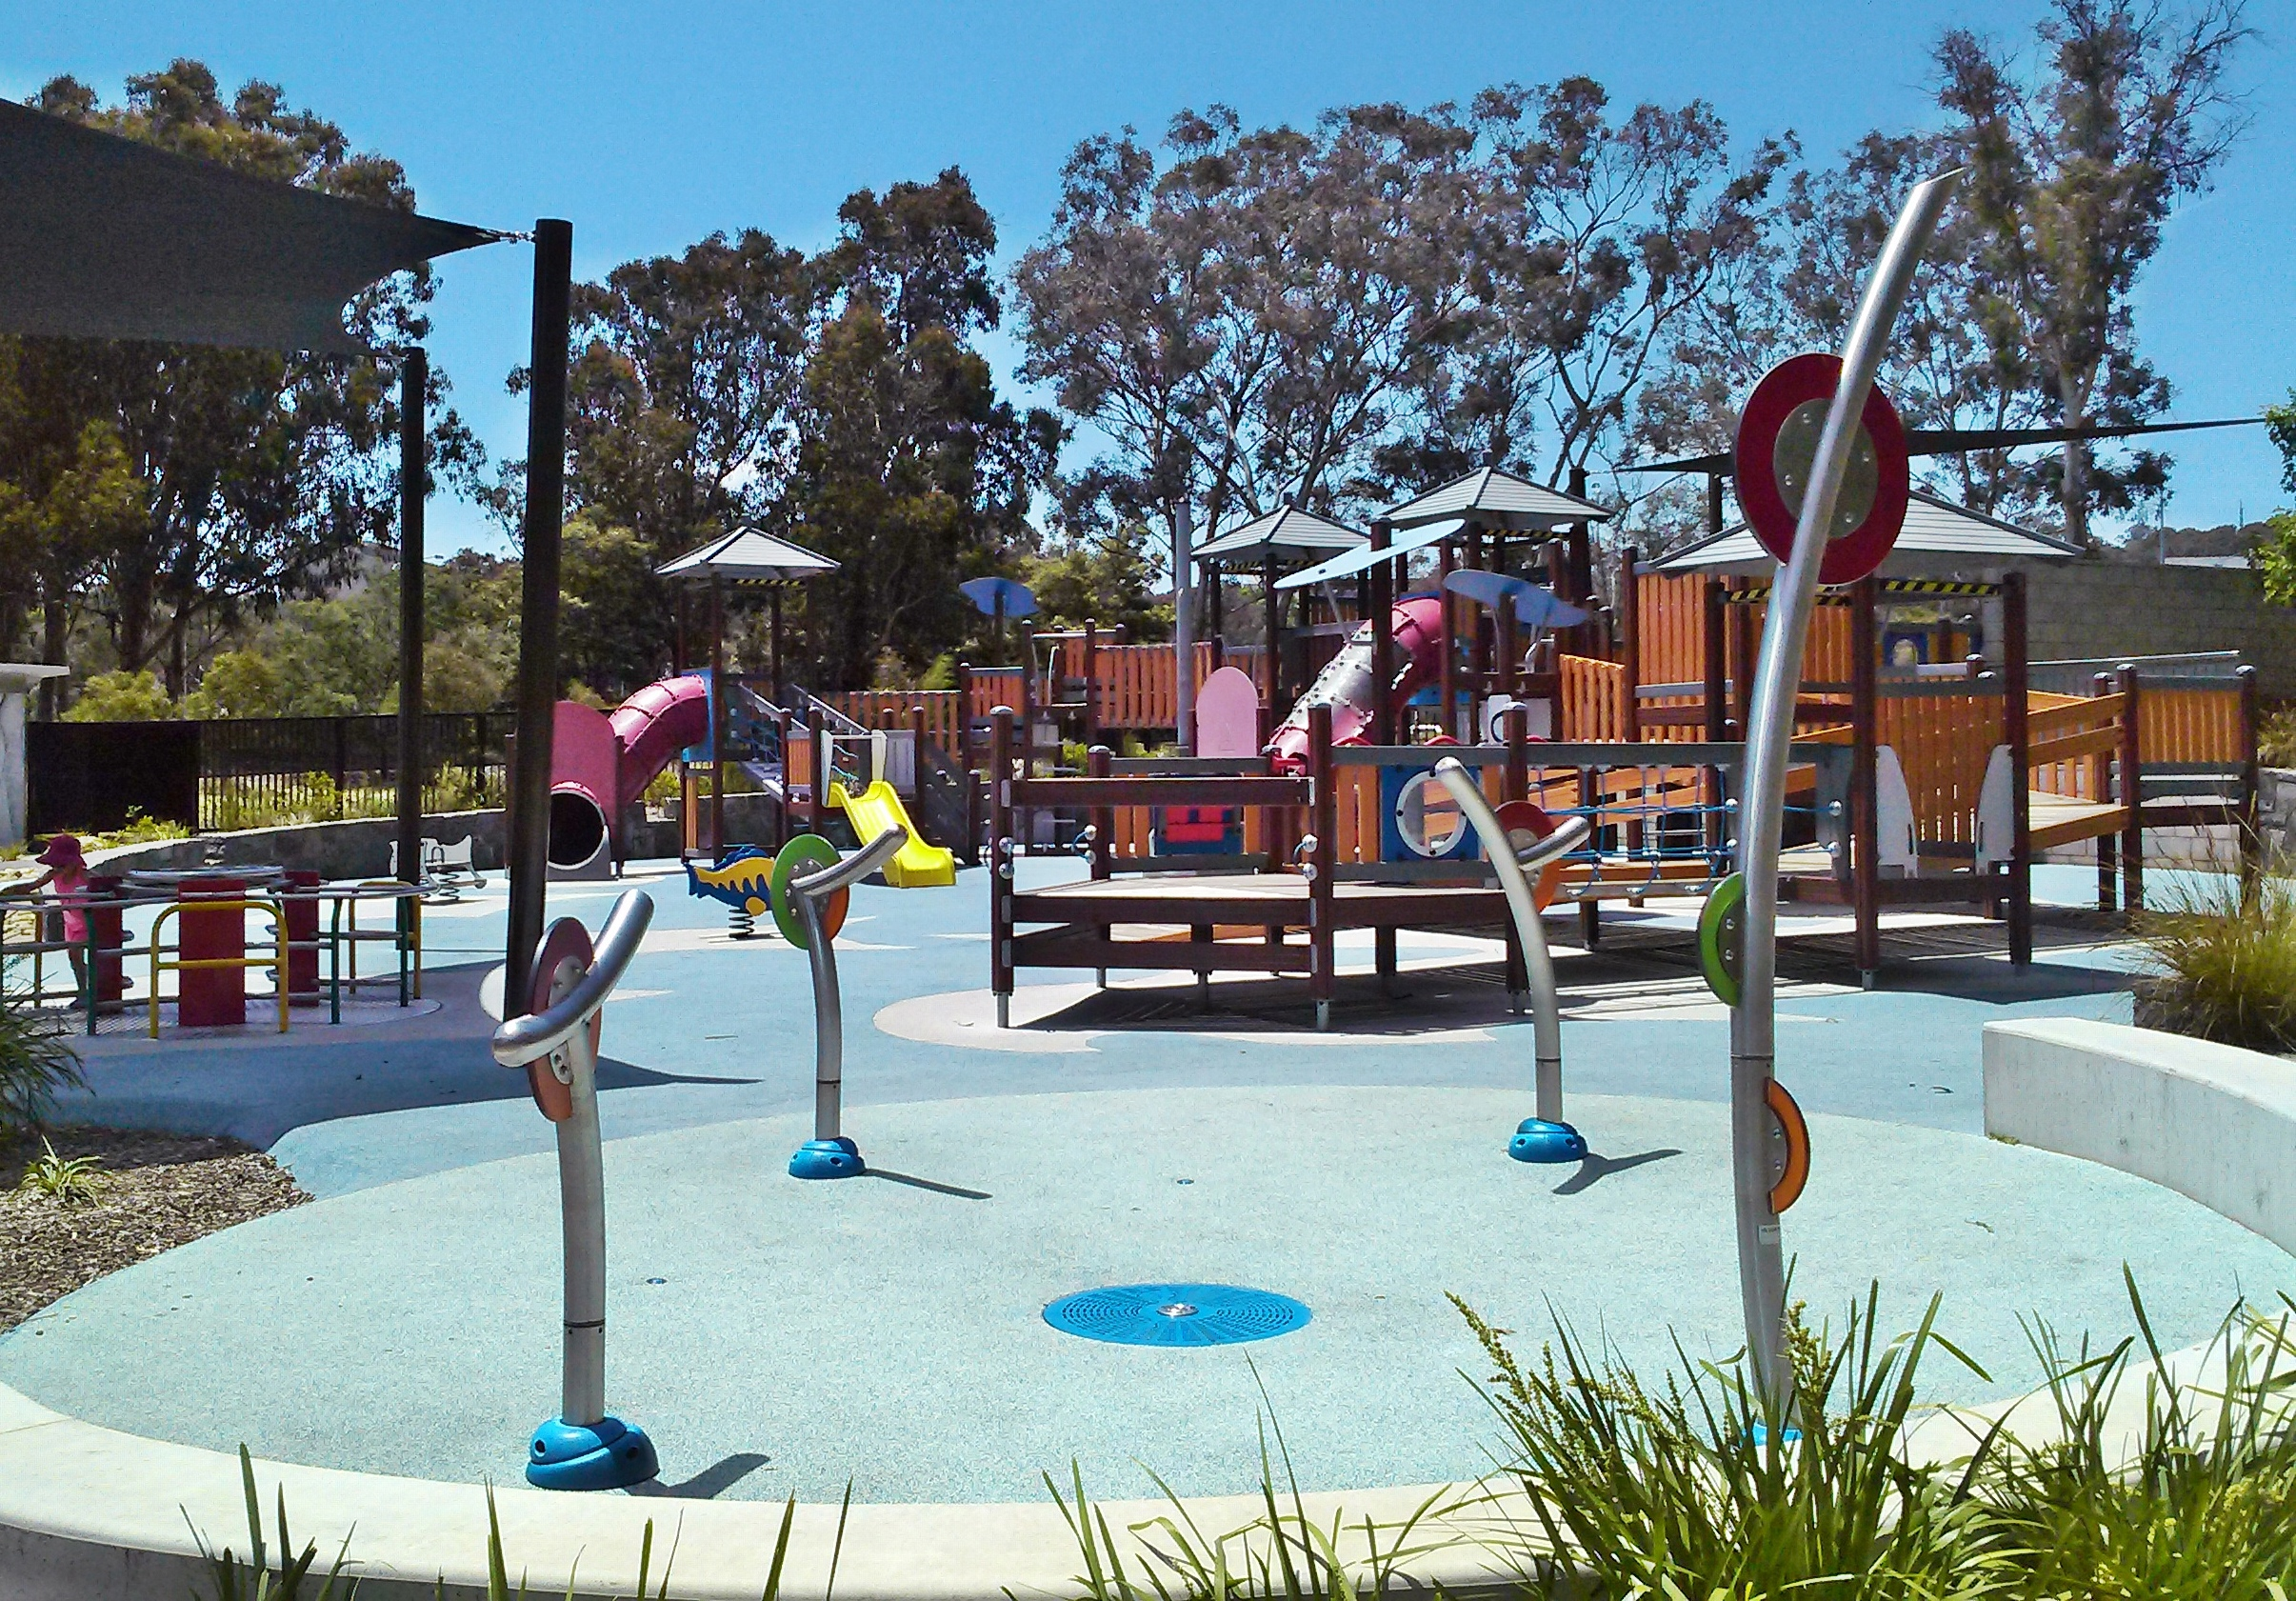 Kids Splash Parks And Water Play In Canberra Canberra